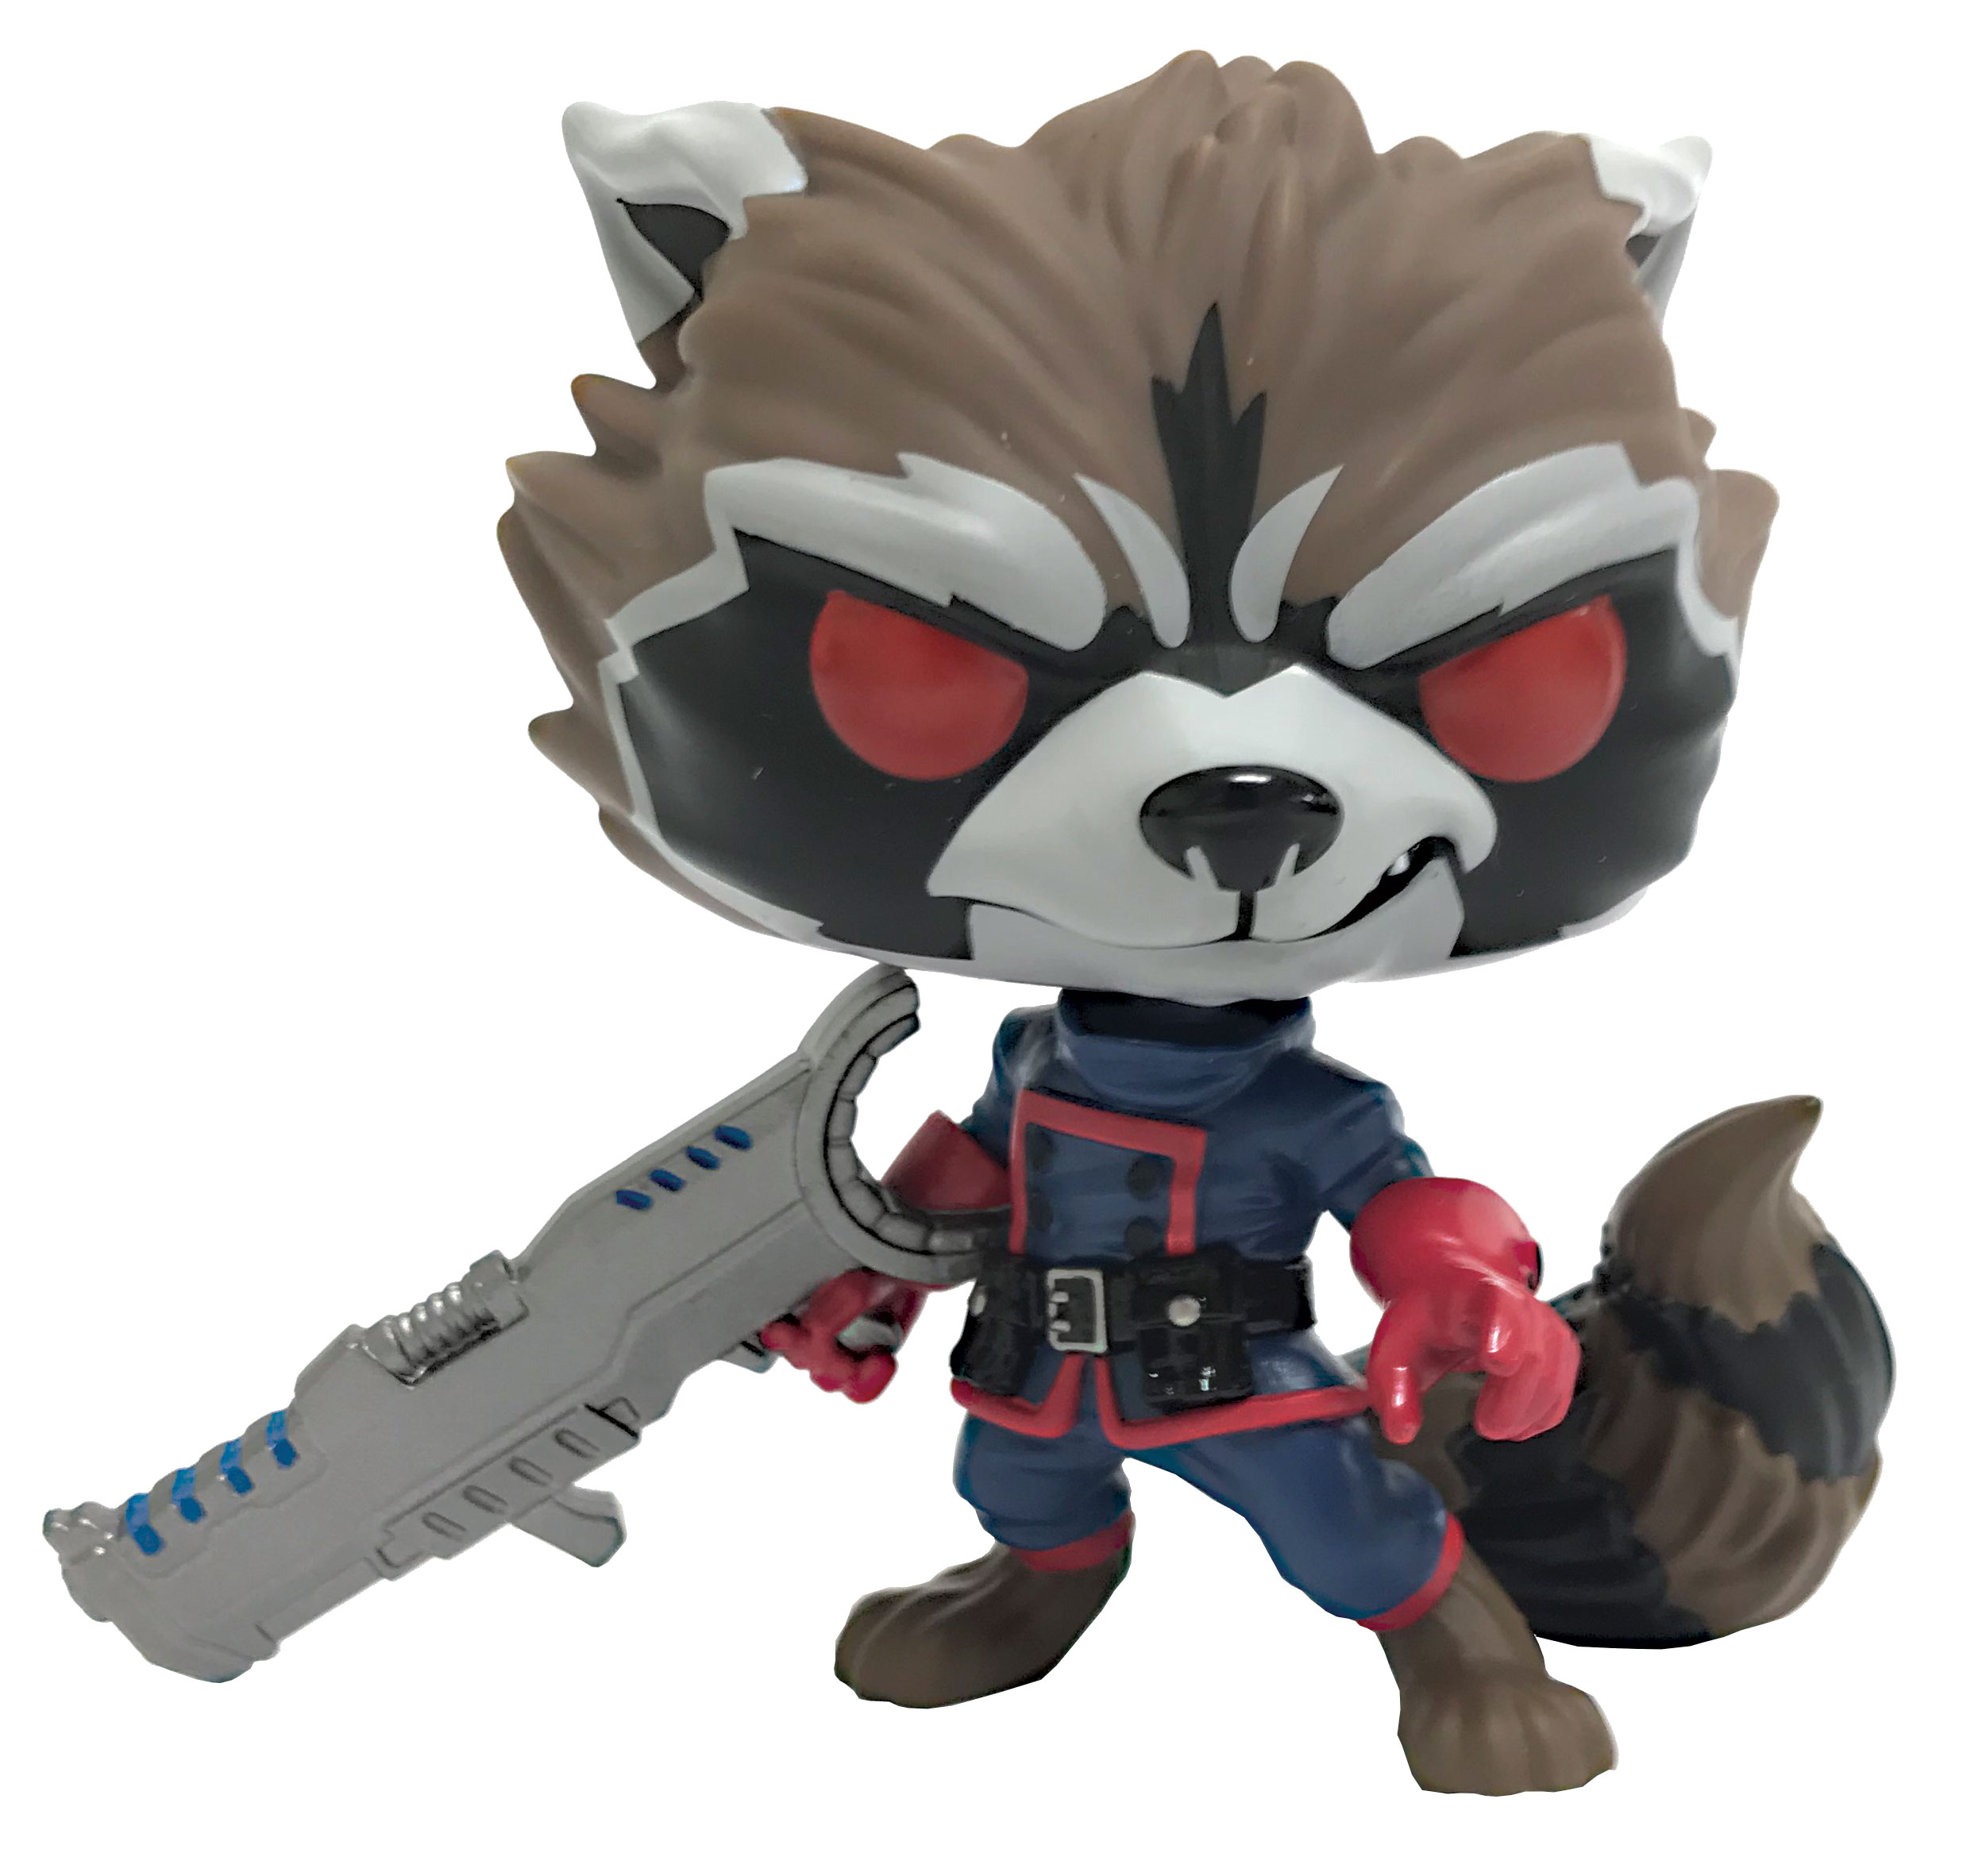 Classic Rocket Raccoon Funko Pop Vinyl Coming Soon